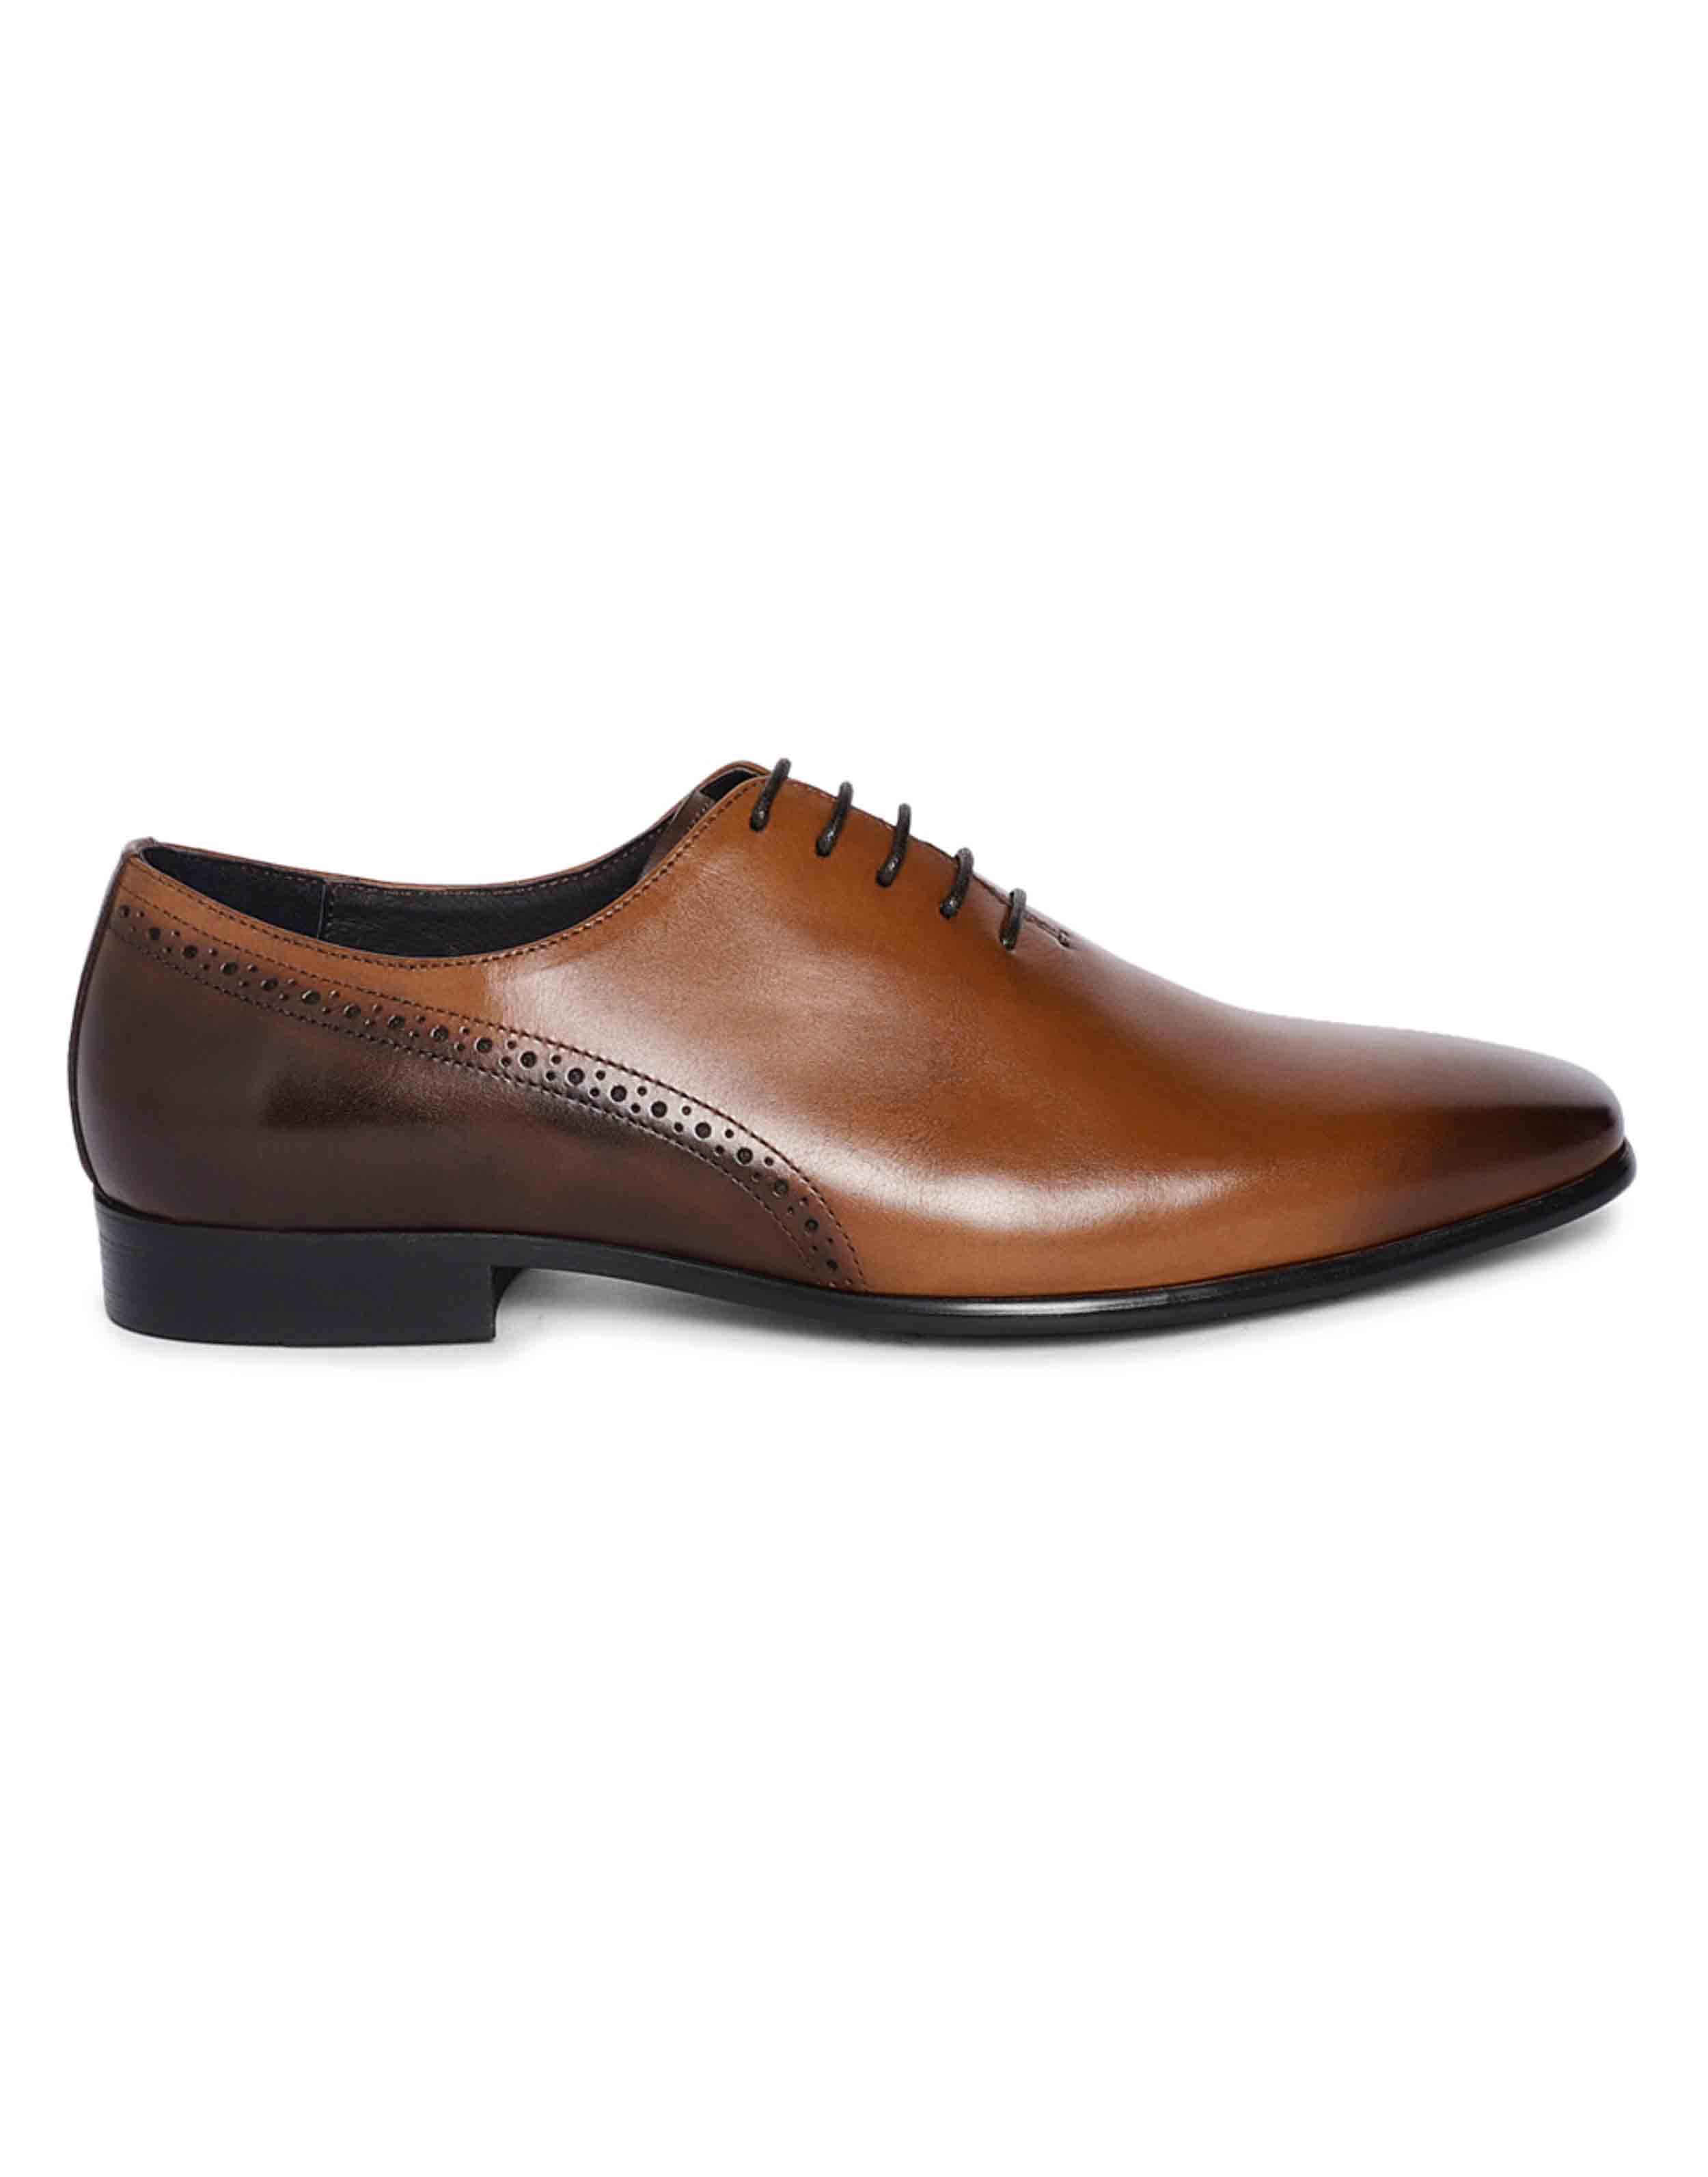 Dual tone Oxfords1